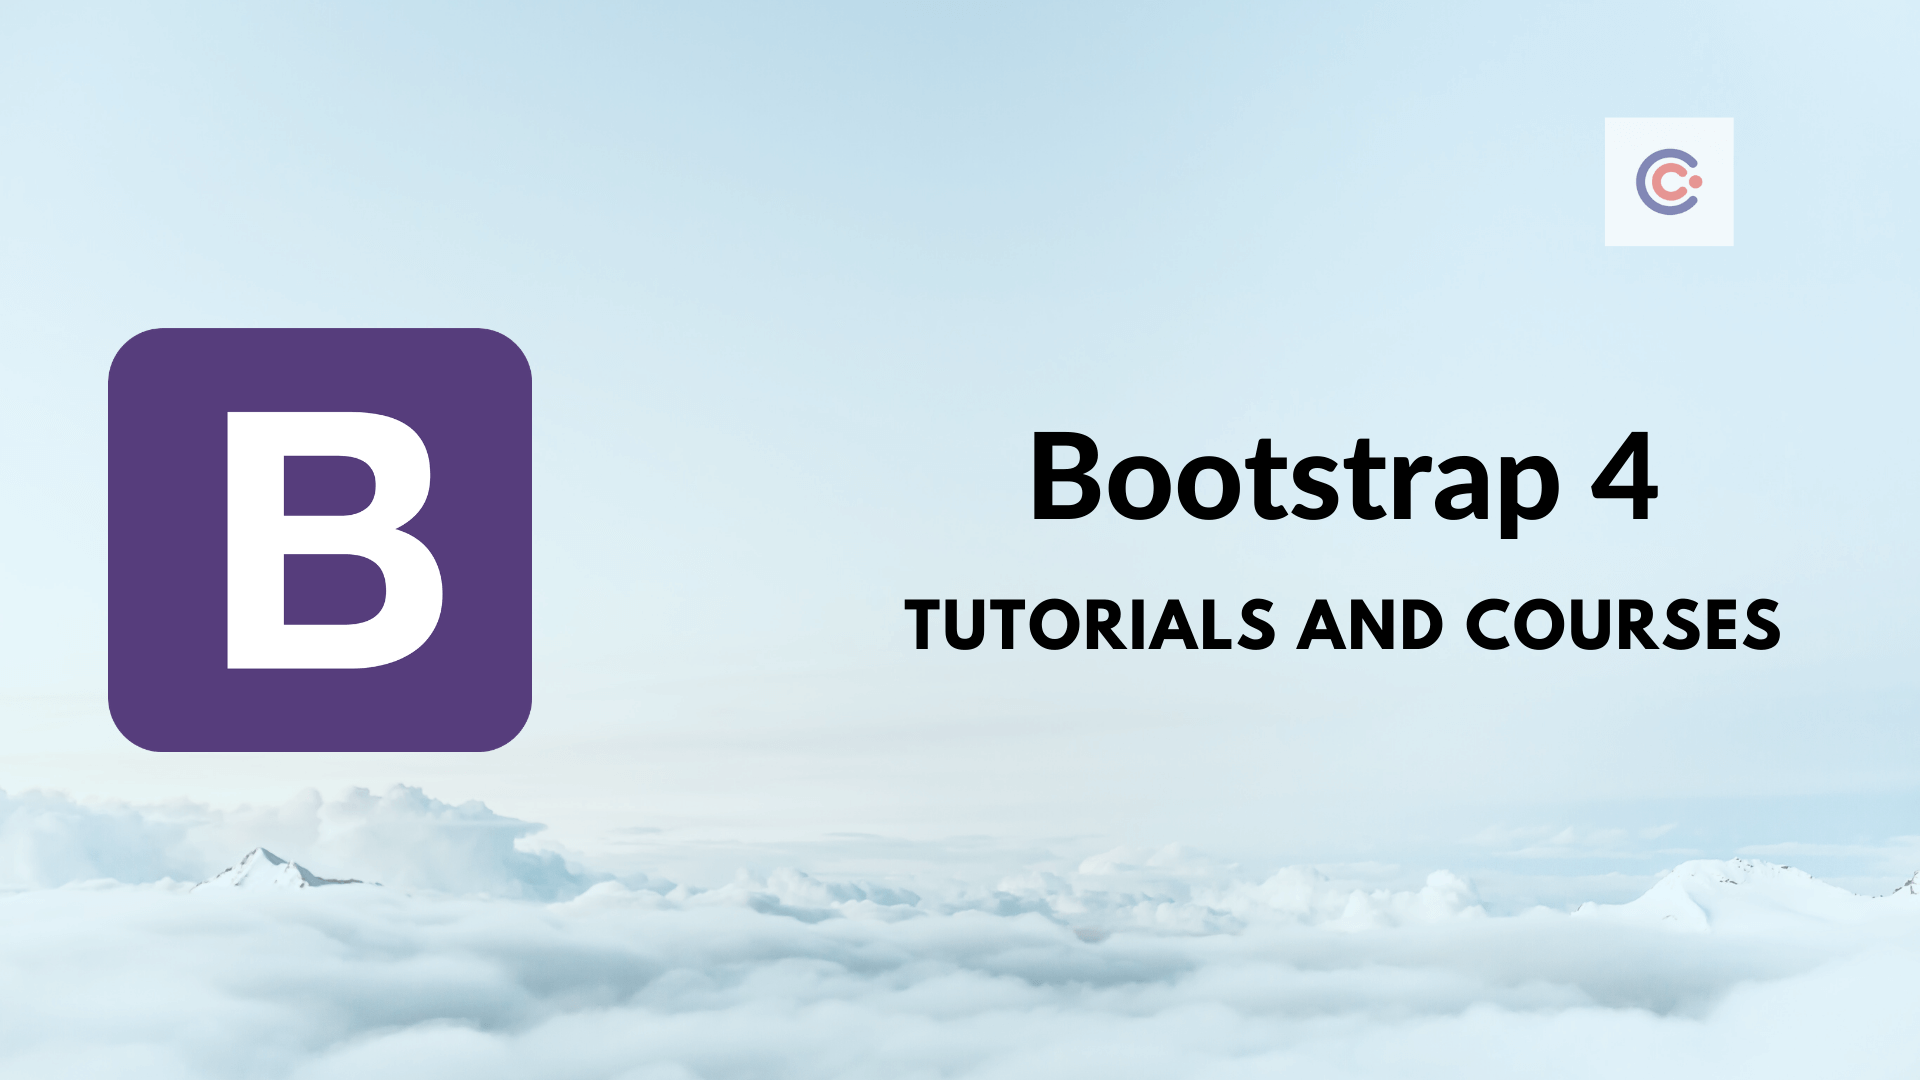 10 Best Bootstrap 4 Tutorials and Courses - Learn Bootstrap 4 Online